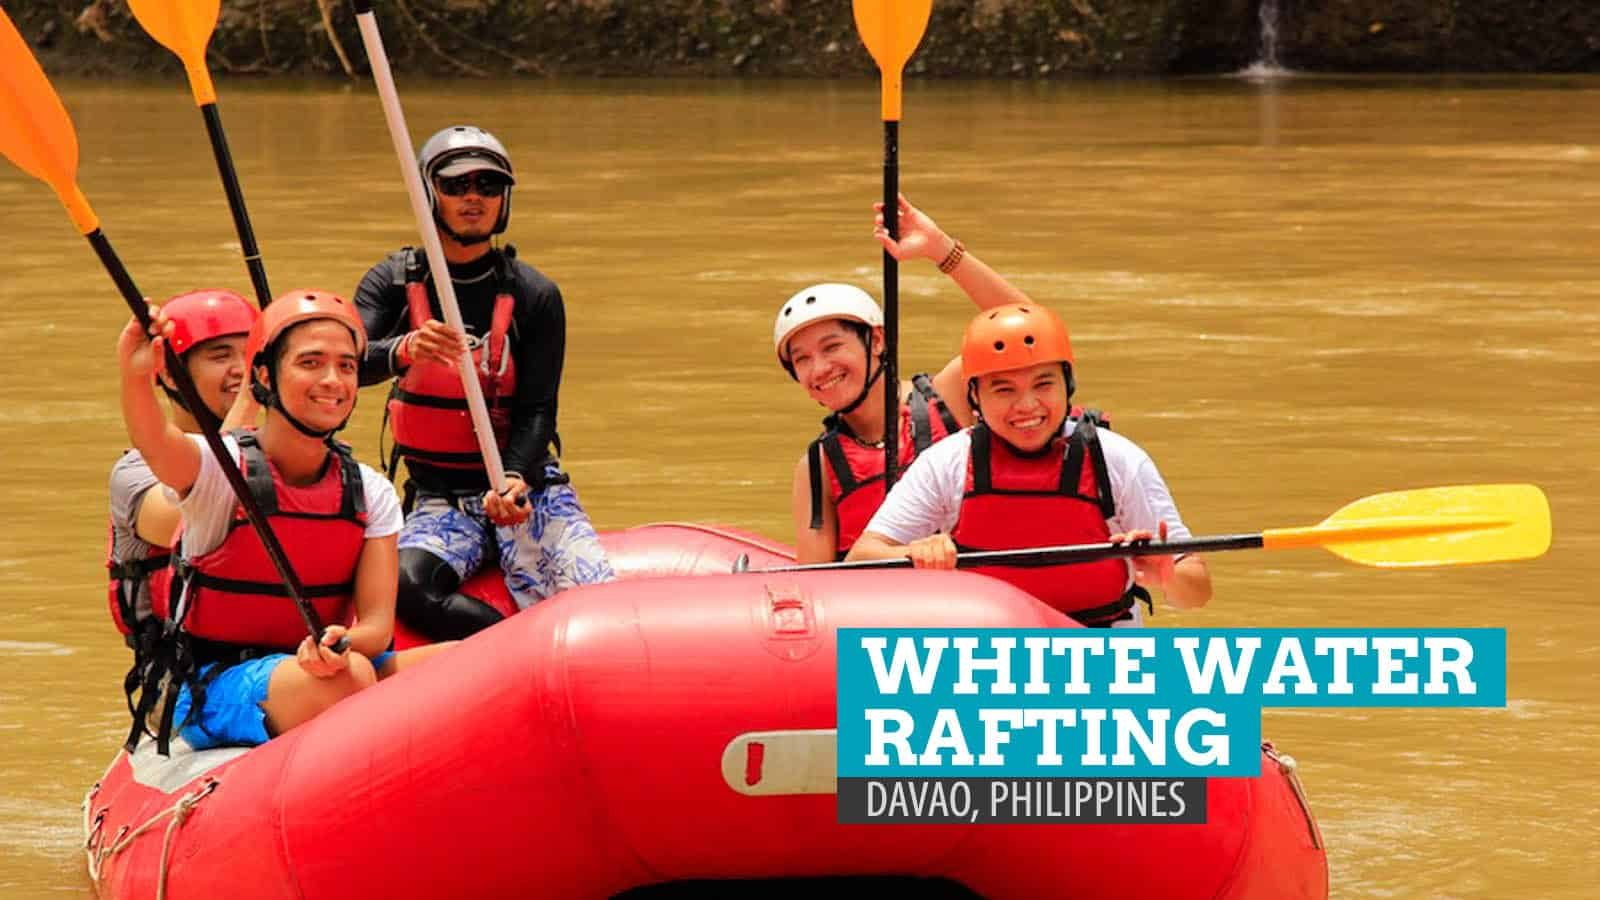 White Water Rafting in Davao, Philippines